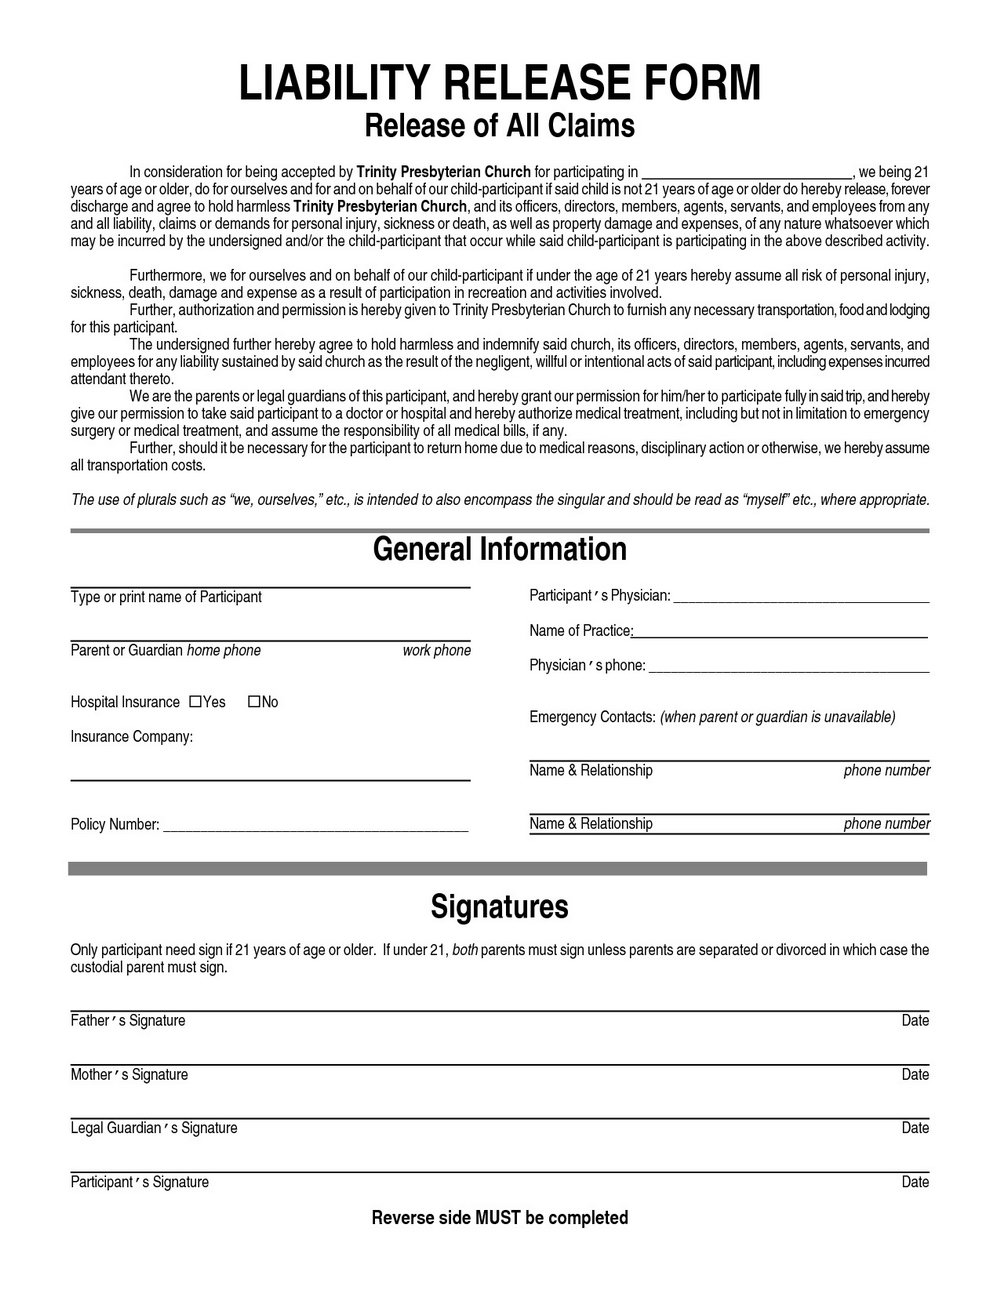 General Liability Release Form Template